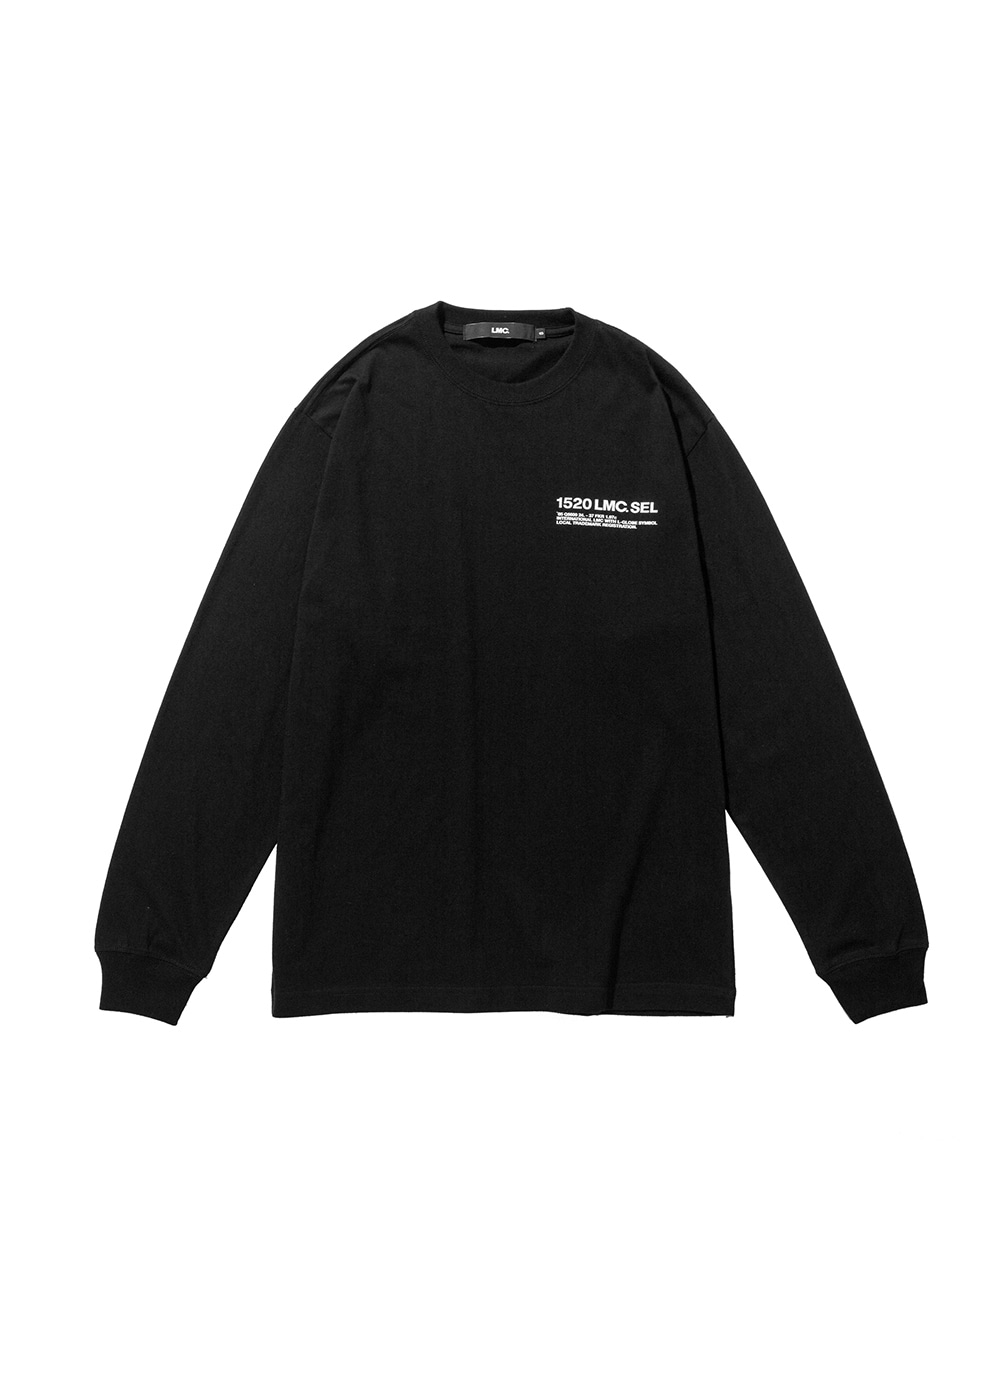 LMC SEL LONG SLV TEE black